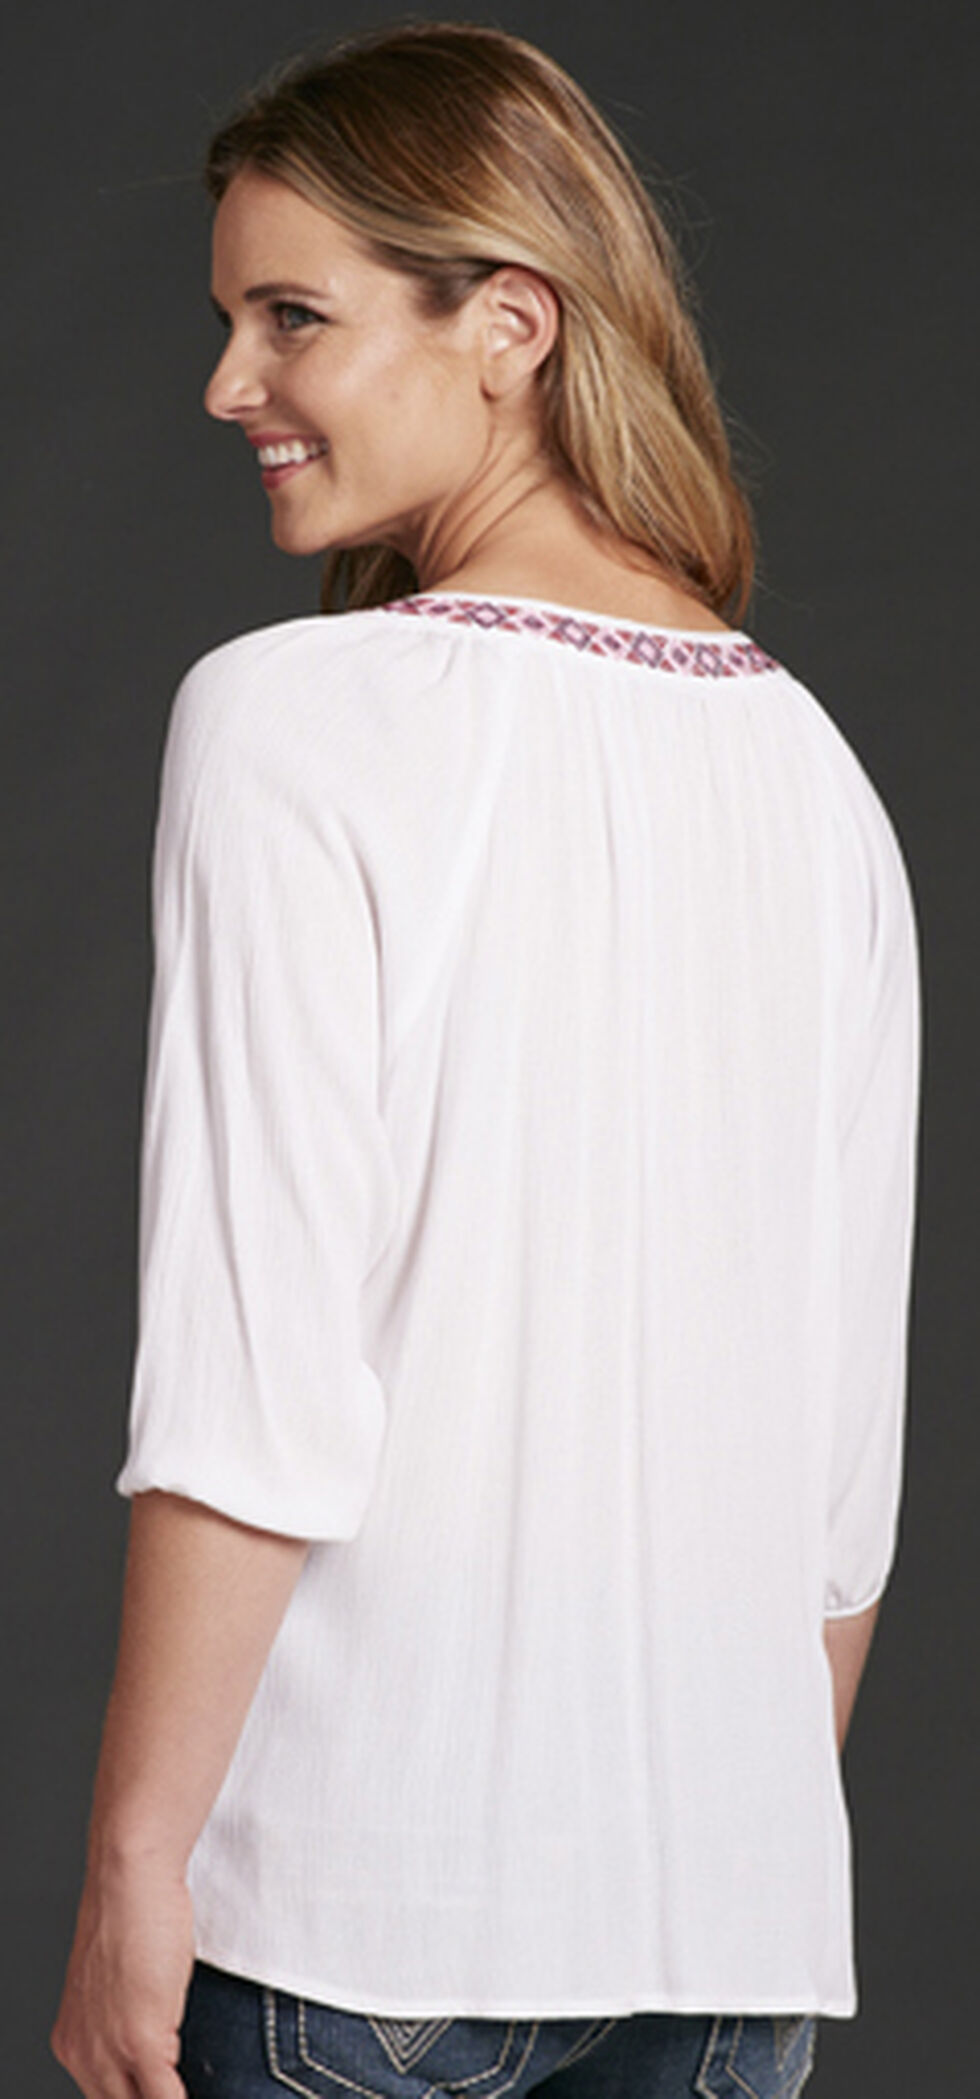 Cowgirl Up Women's Tassel Top, White, hi-res